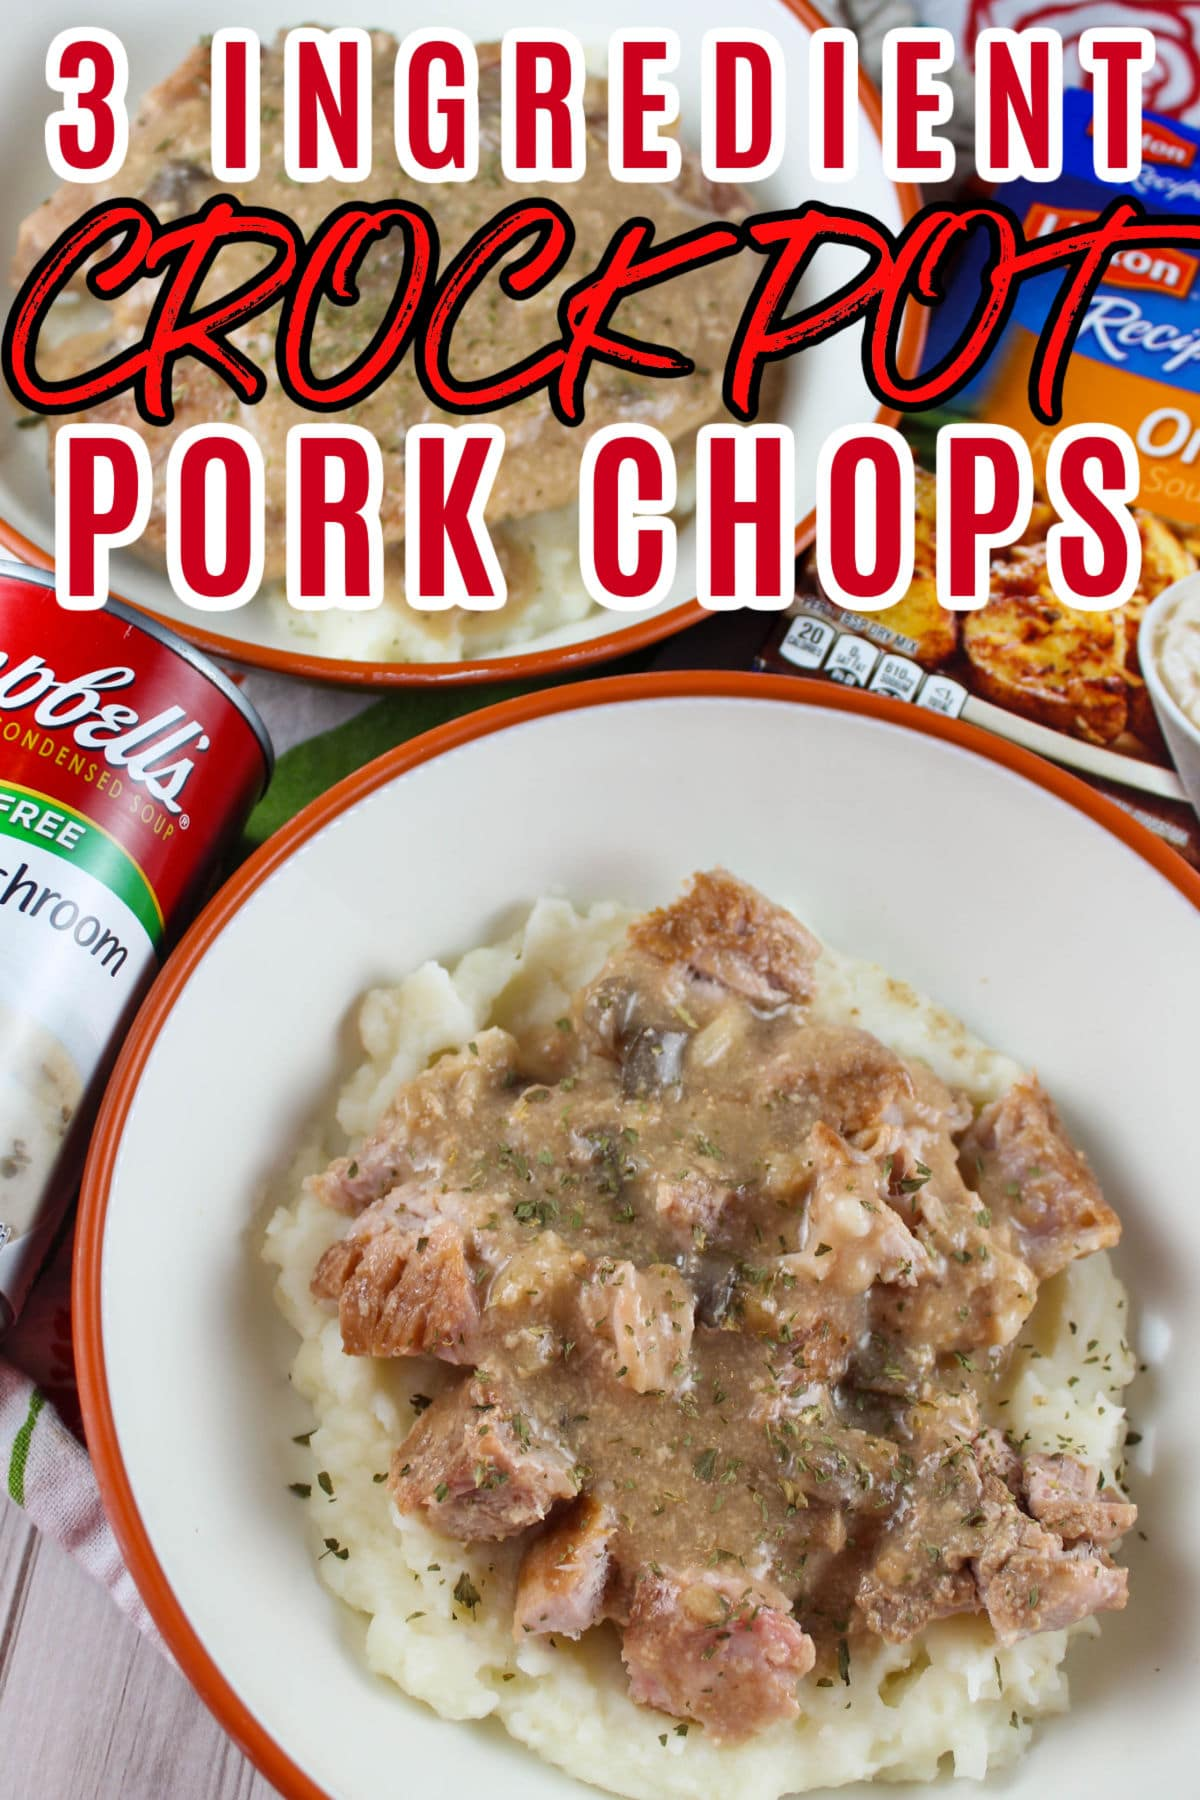 These 3 Ingredient Crock Pot Pork Chops will be a weekly meal in your house once you try them! First of all they're SO EASY!!! Second - they're delicious! Third - there's only THREE INGREDIENTS!!! It took longer to get the crock pot out of the cupboard then it did to make them! via @foodhussy